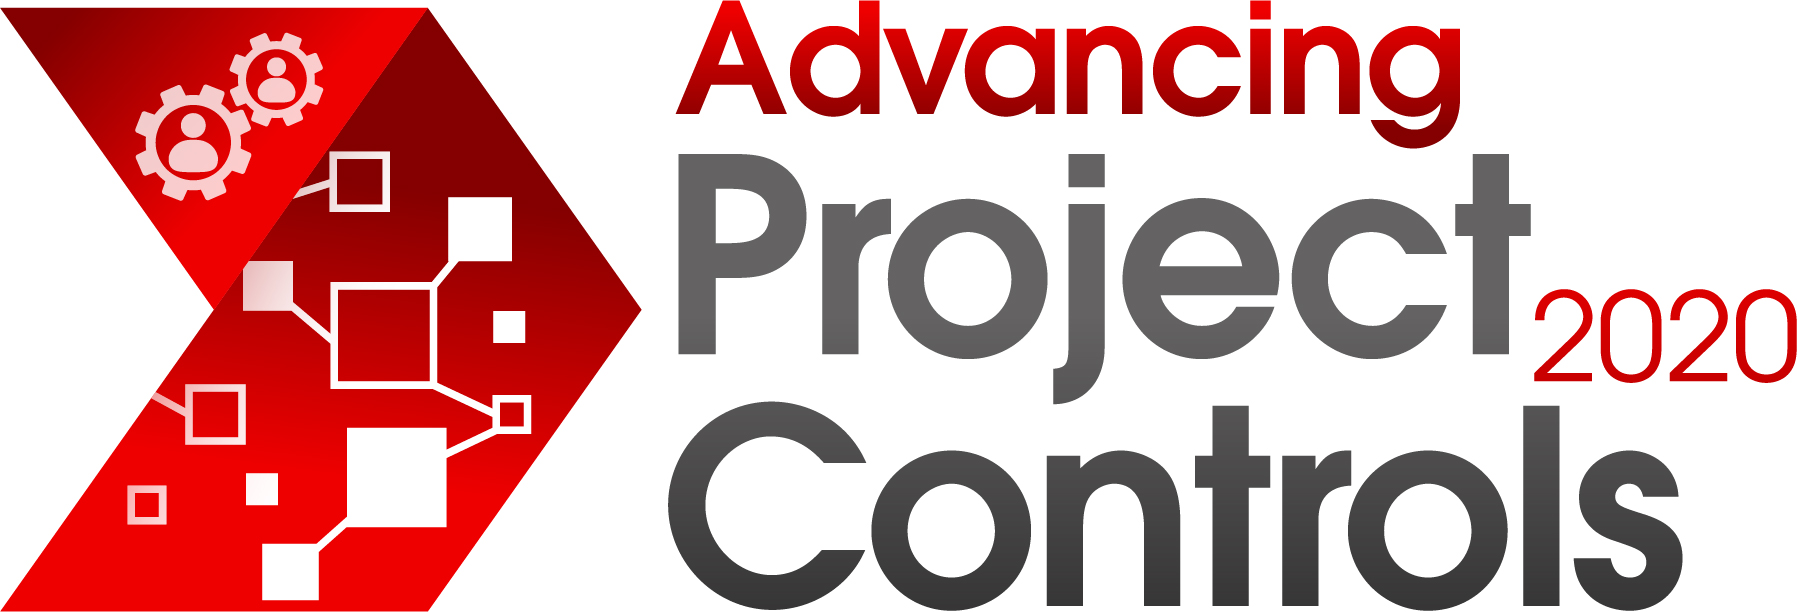 Advancing Project Controls 2020 logo